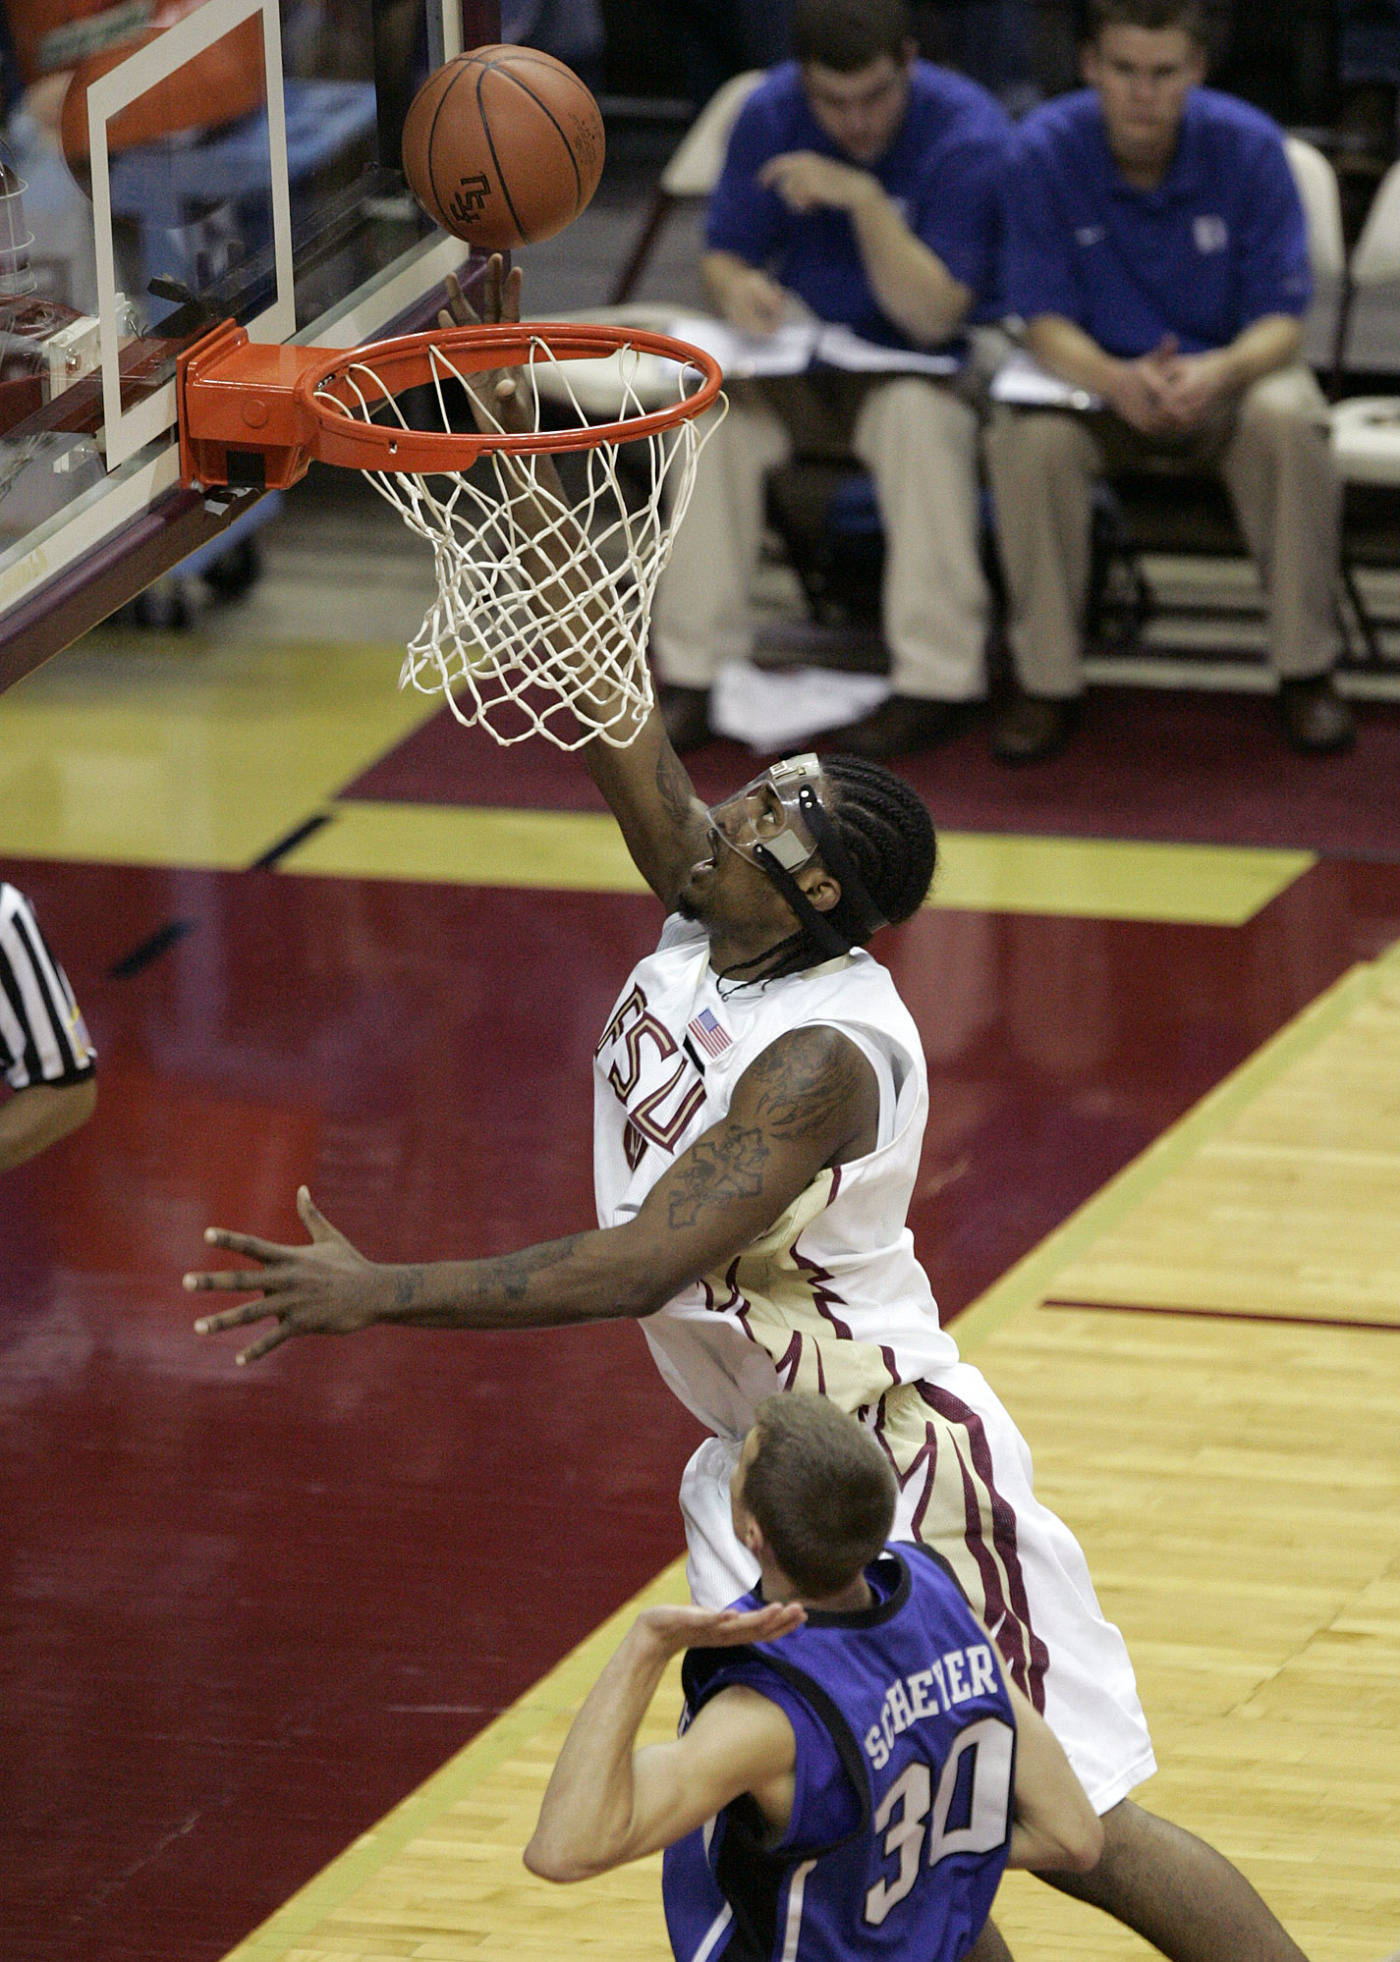 Florida State's Ryan Reid scores a basket against Duke's Jon Scheyer in the first half of a college basketball game on Wednesday, Jan. 16, 2008 in Tallahassee, Fla.